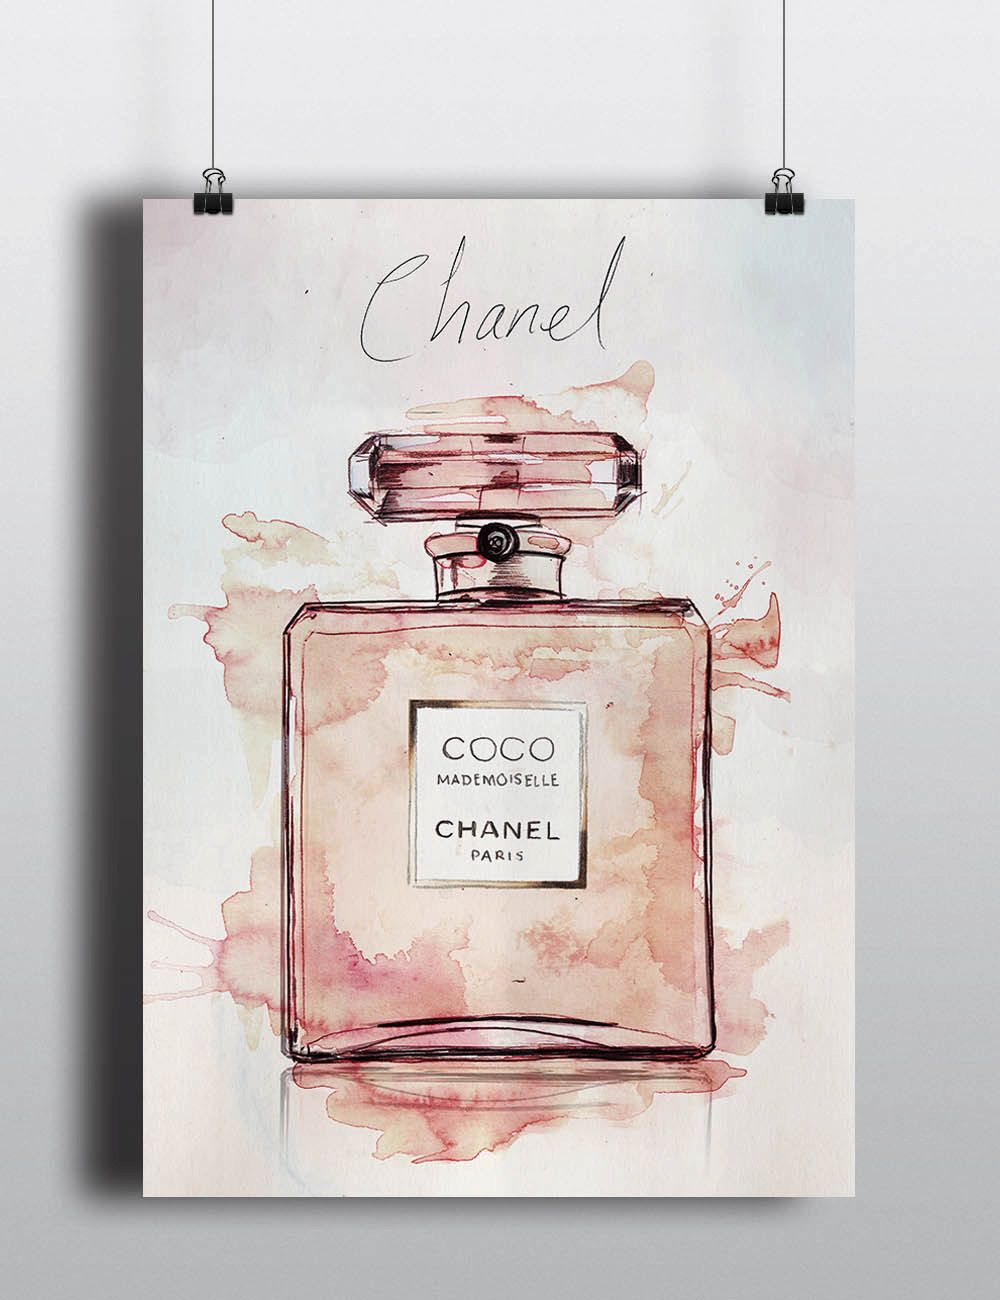 Pin By Betsy Wahlsten On Home Decor Coco Mademoiselle Chanel Perfume Mademoiselle Chanel Perfume